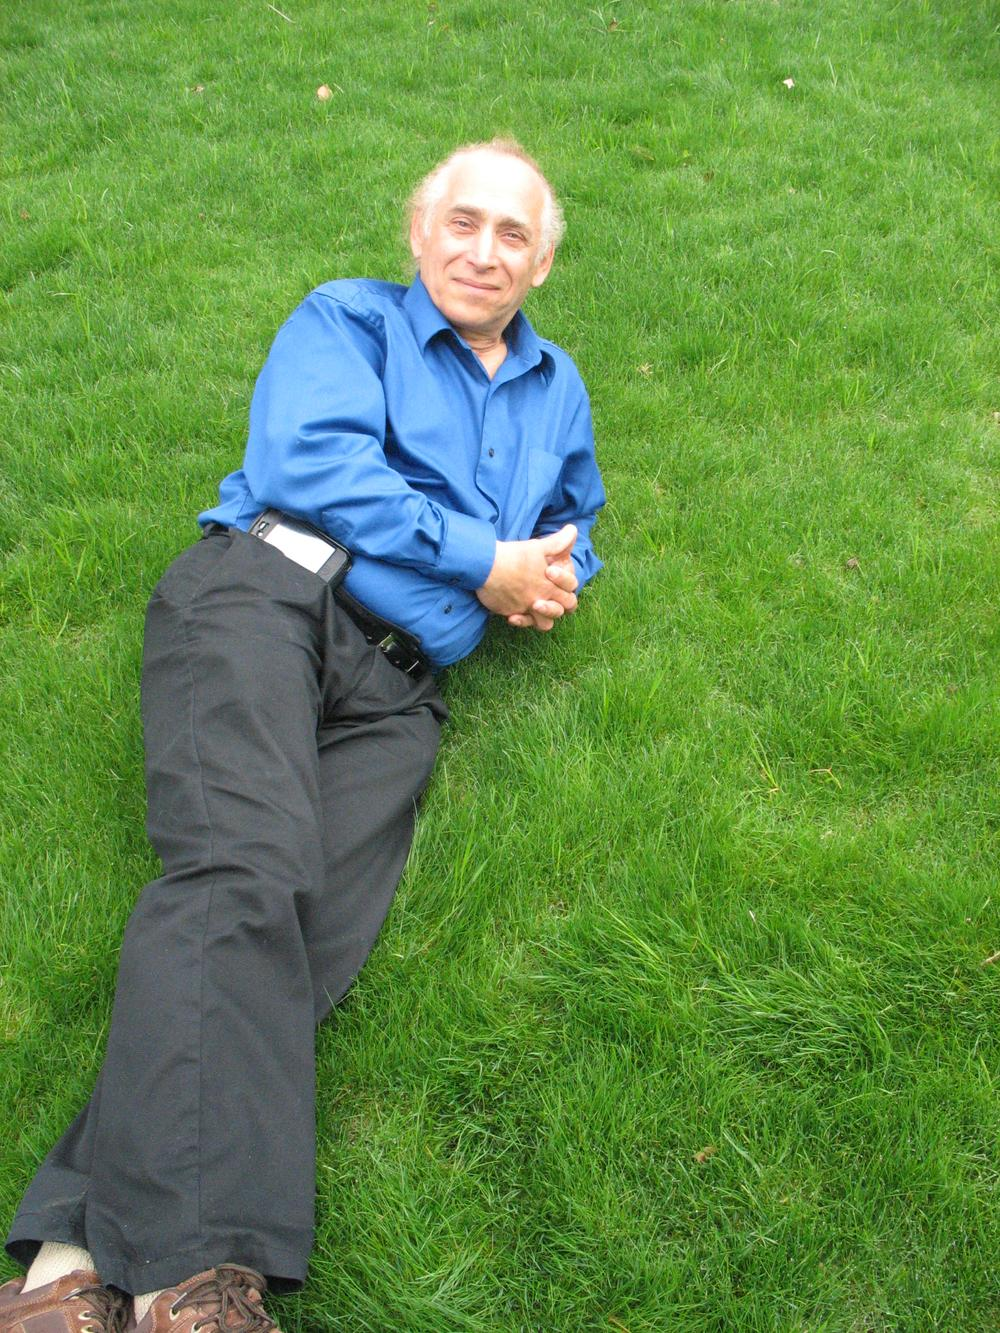 Jackson Madnick, the inventor of Pearls Premium grass seed, lays down on lawn seeded with his ultra low maintainence grass. (Photo by Monica Brady-Myerov)